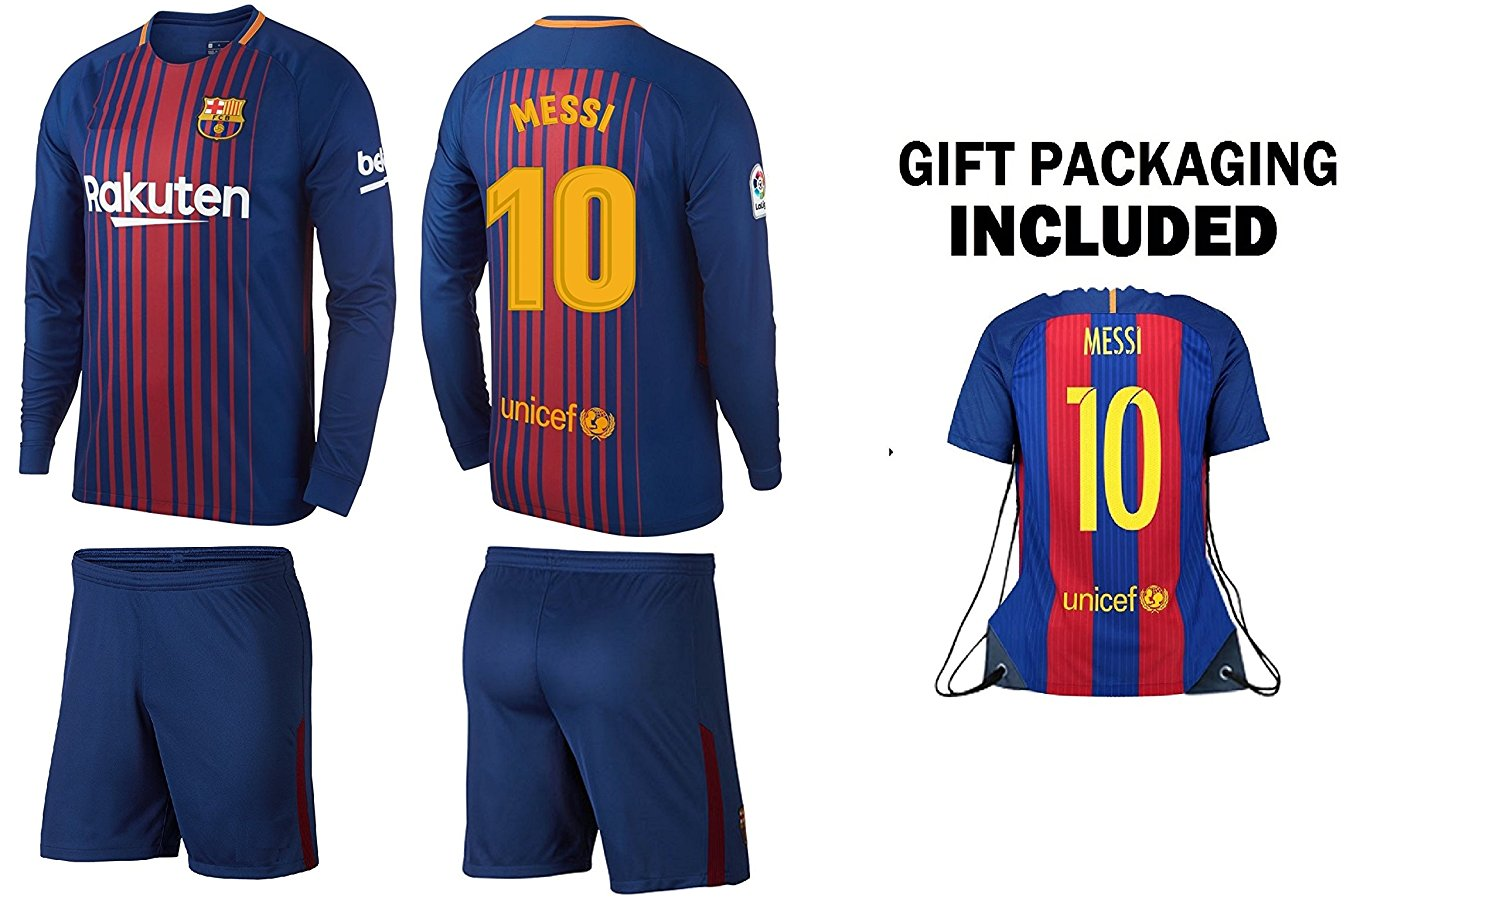 f90f2b959 Get Quotations · Messi  10 Barcelona jersey Youth 3 in 1 Soccer Gift Set  for kids ✓ Long